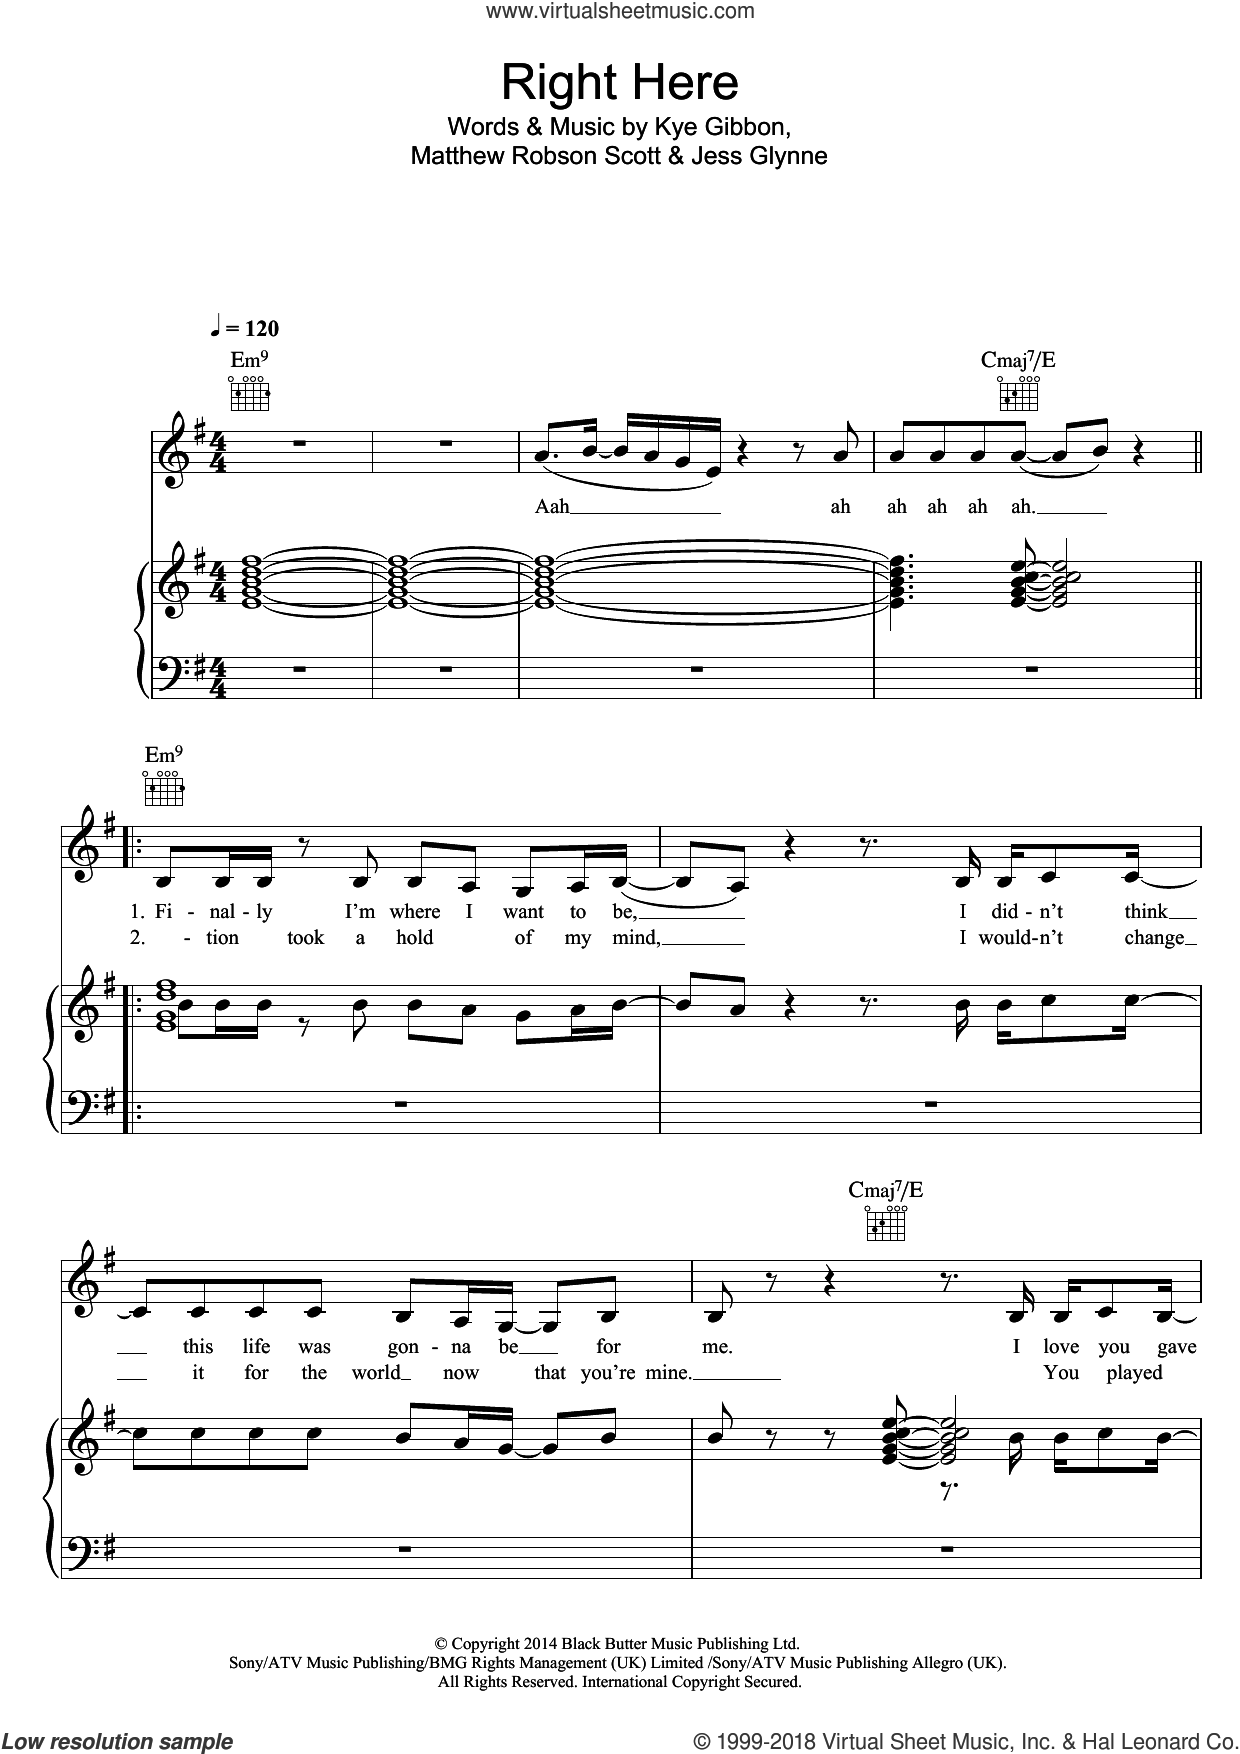 Right Here sheet music for voice, piano or guitar by Kye Gibbon. Score Image Preview.